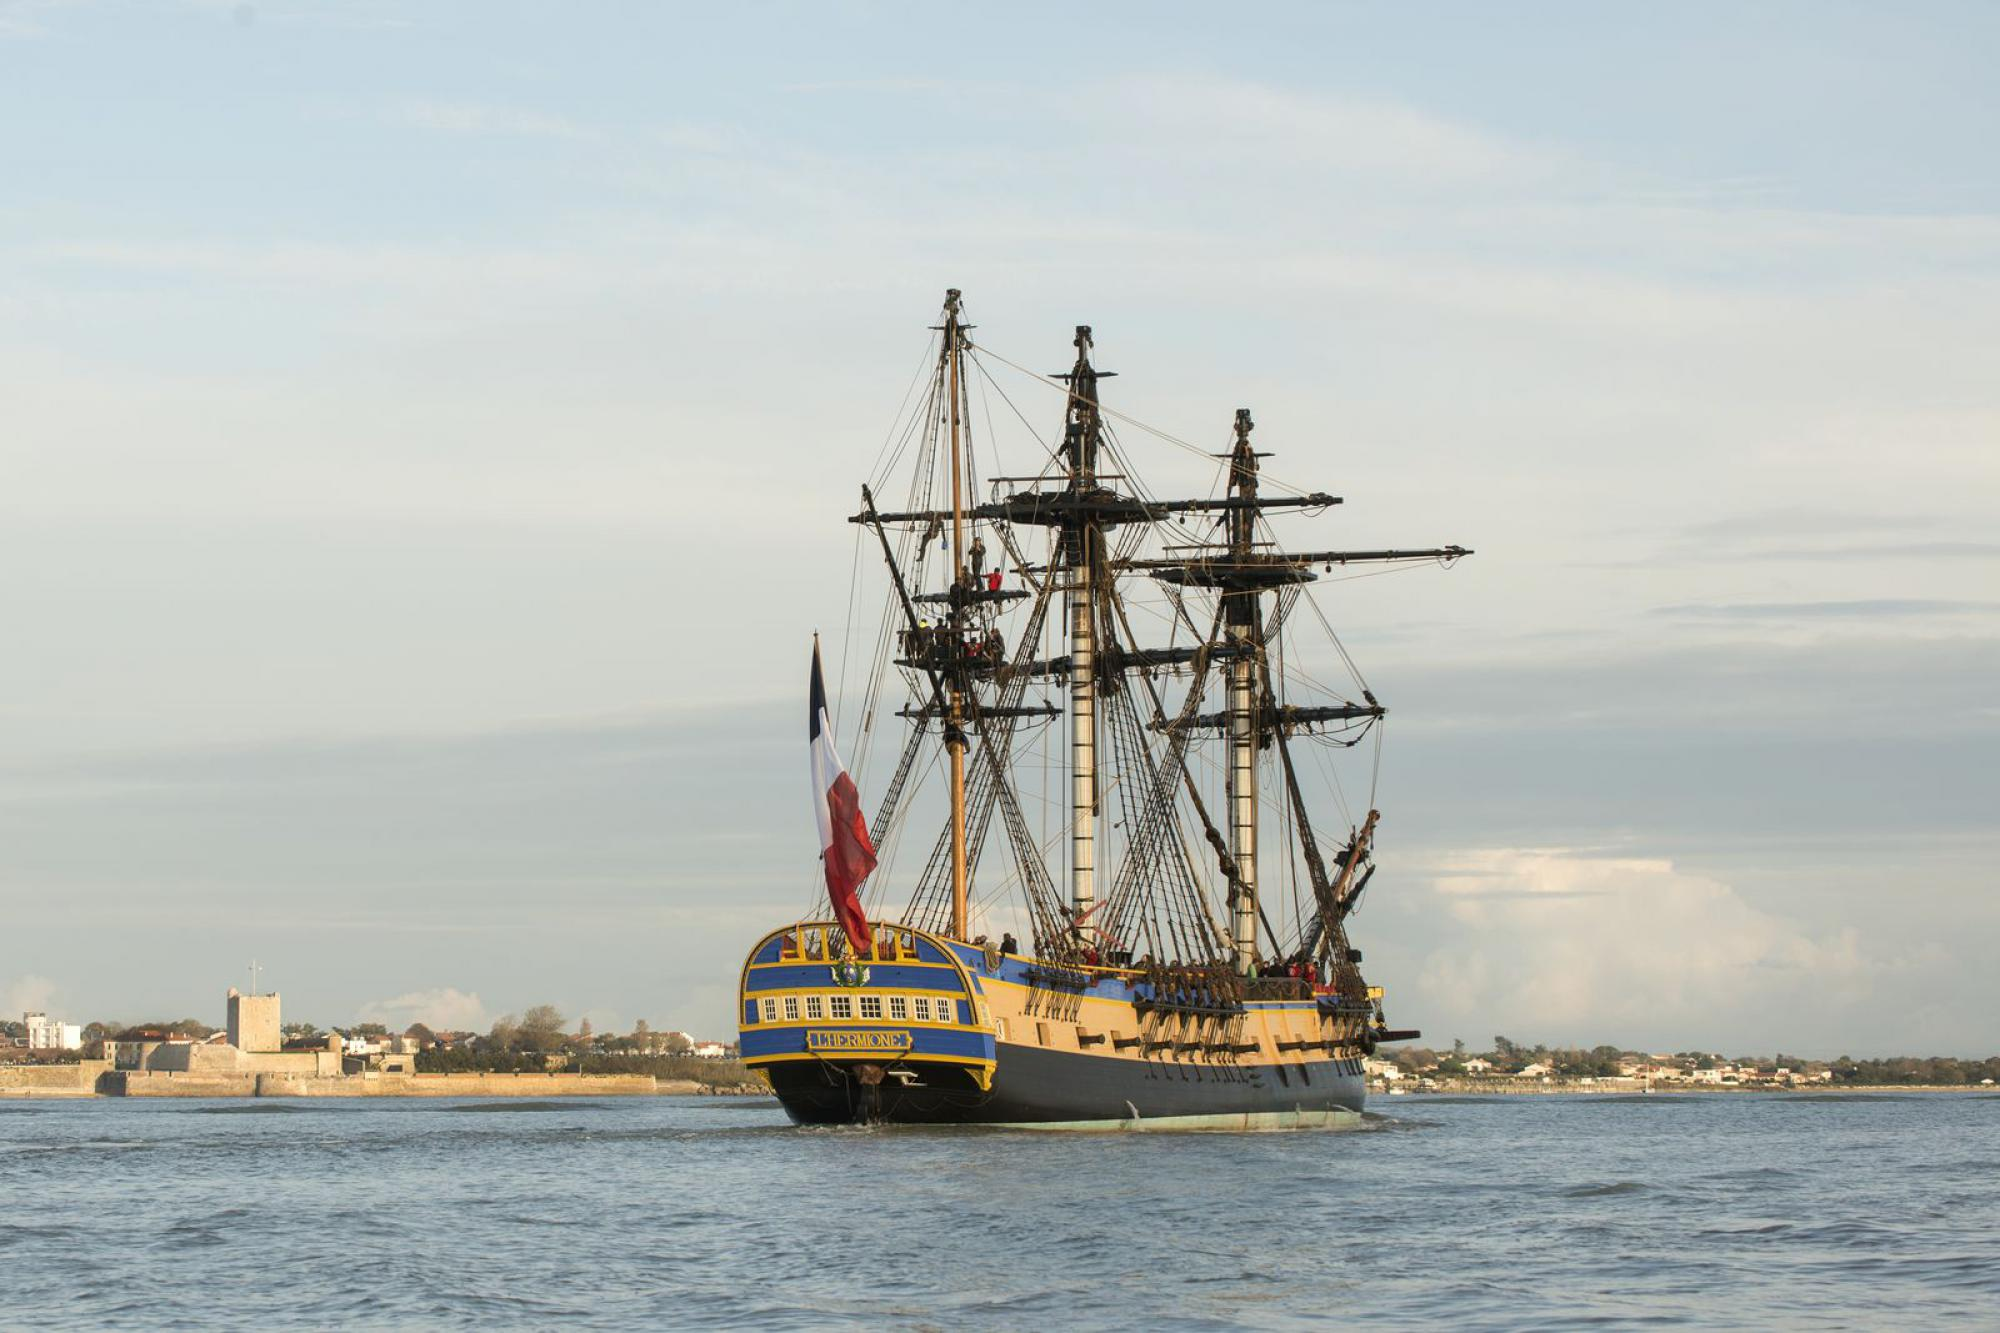 L'Hermione in Rochefort